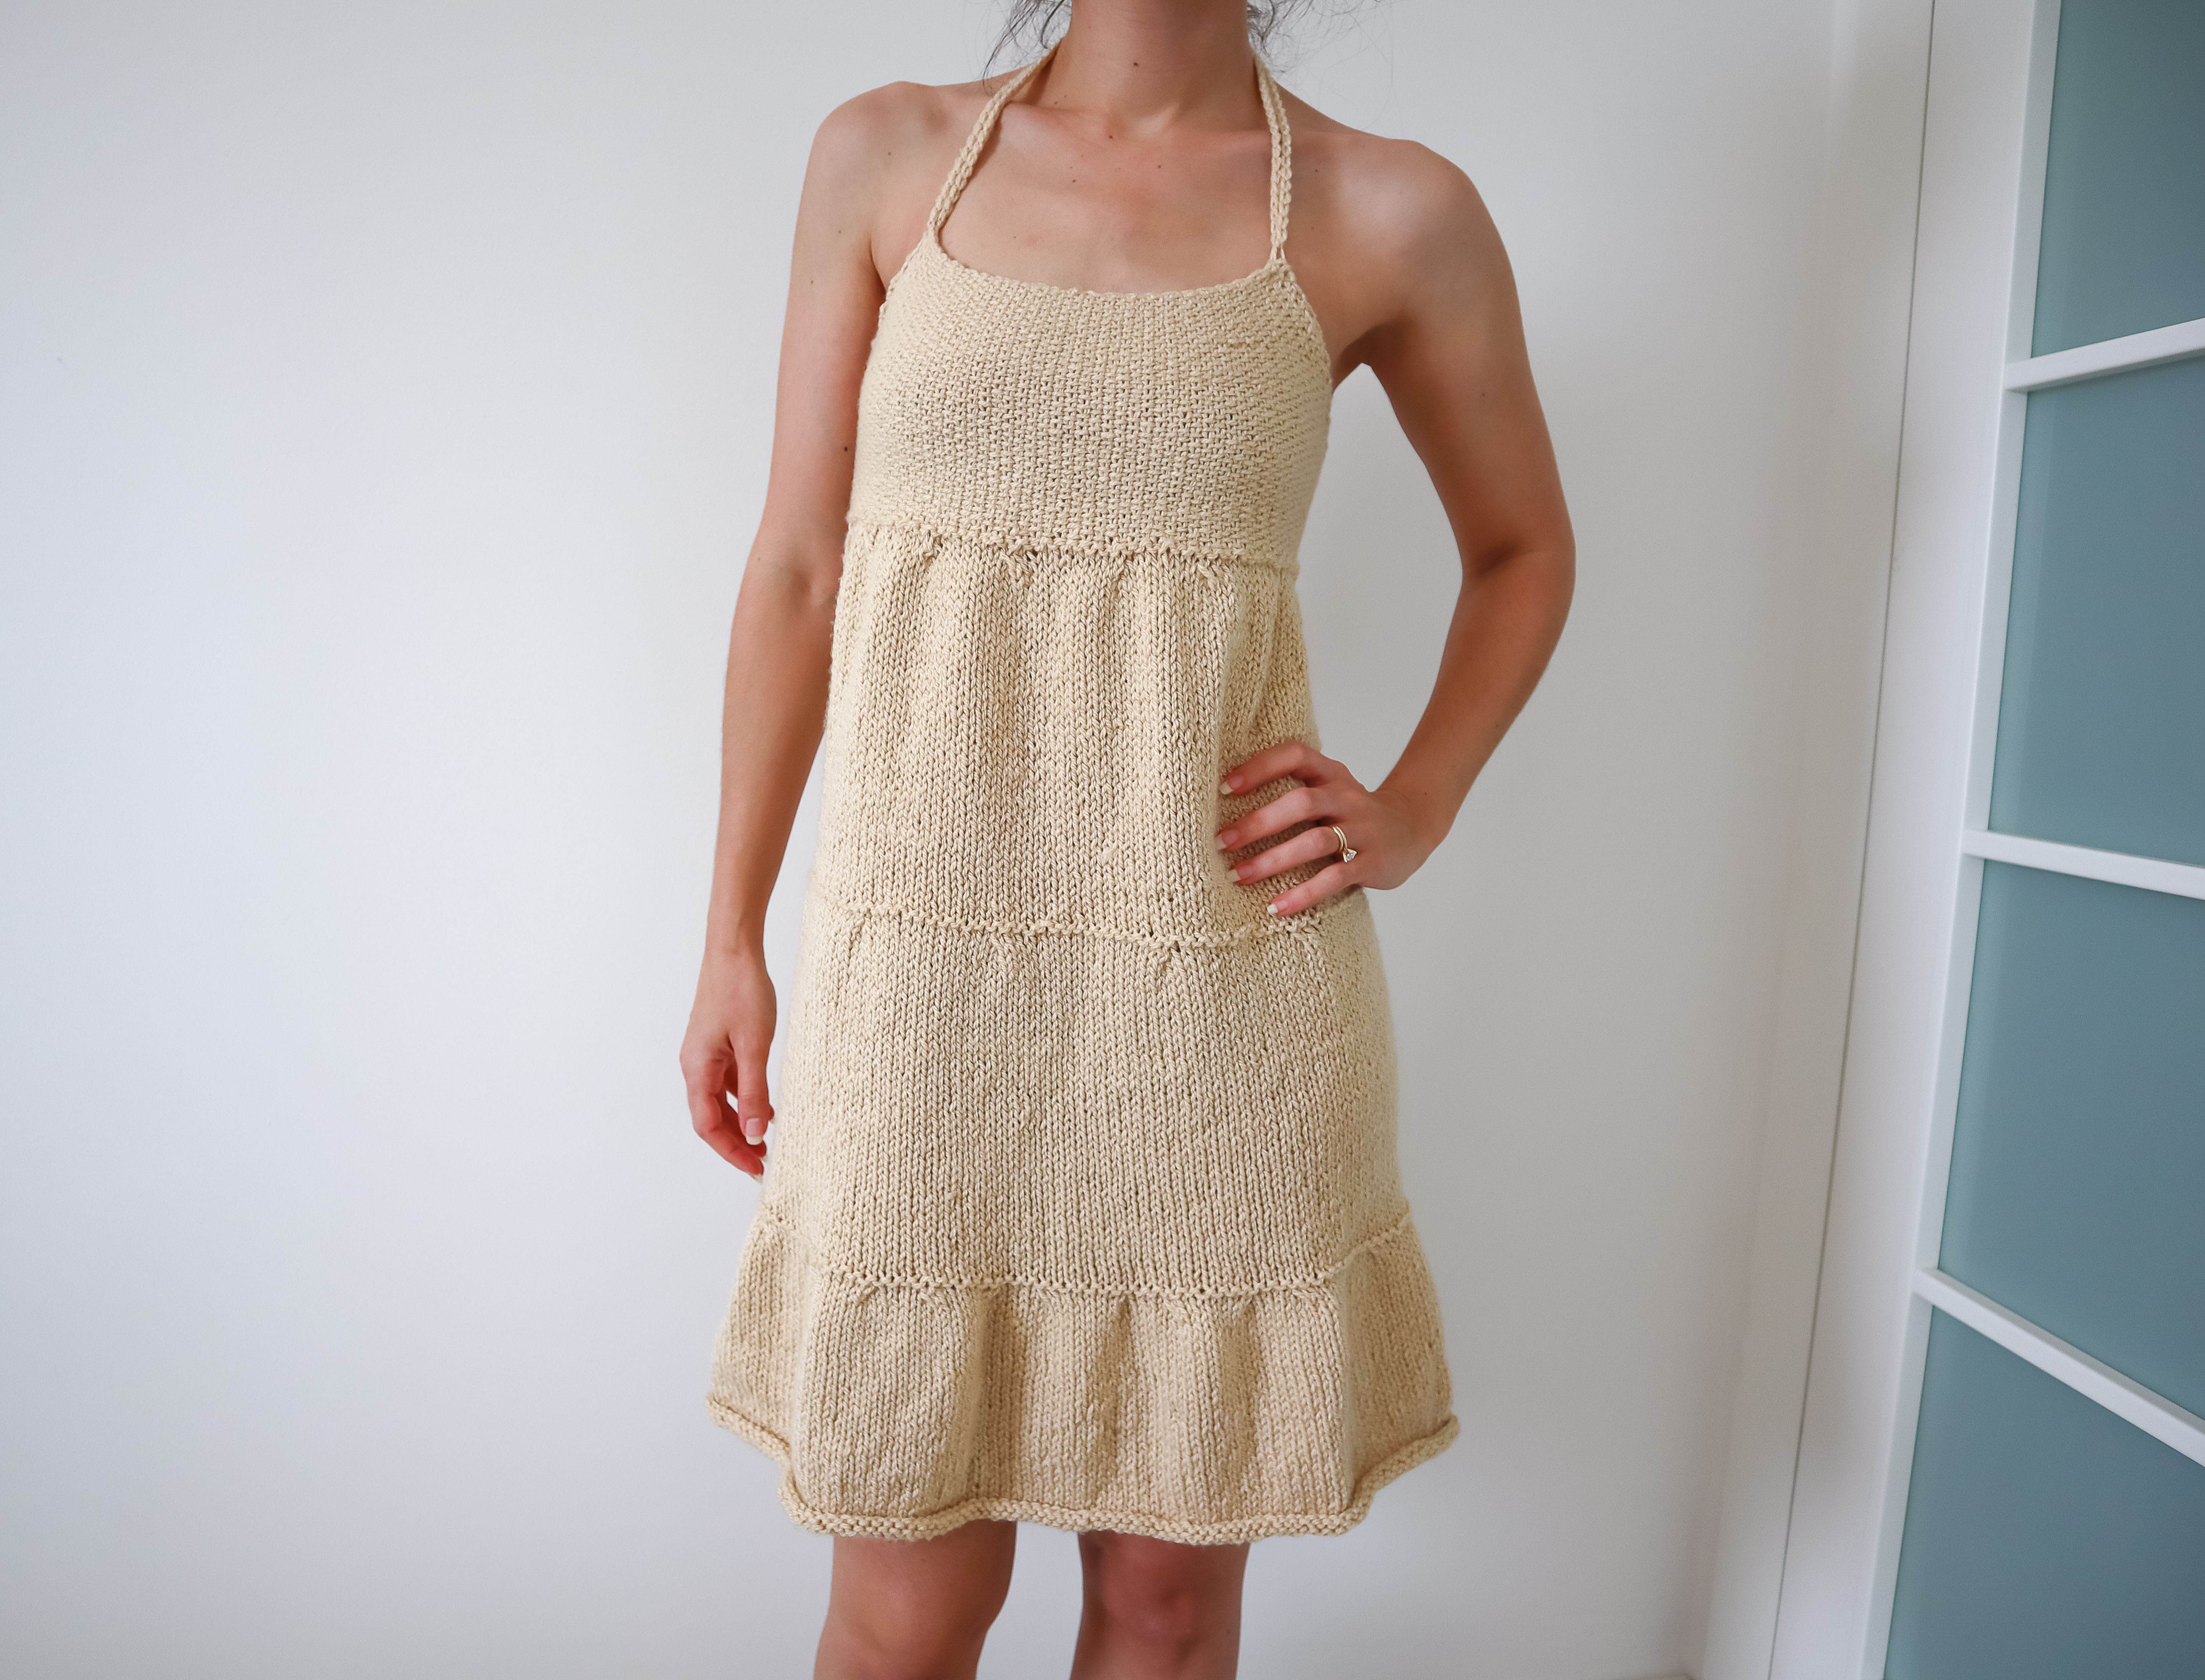 Download Free Three Tiered Dress Knitting Pattern Grafico Por Thesnugglery for Cricut Explore, Silhouette and other cutting machines.